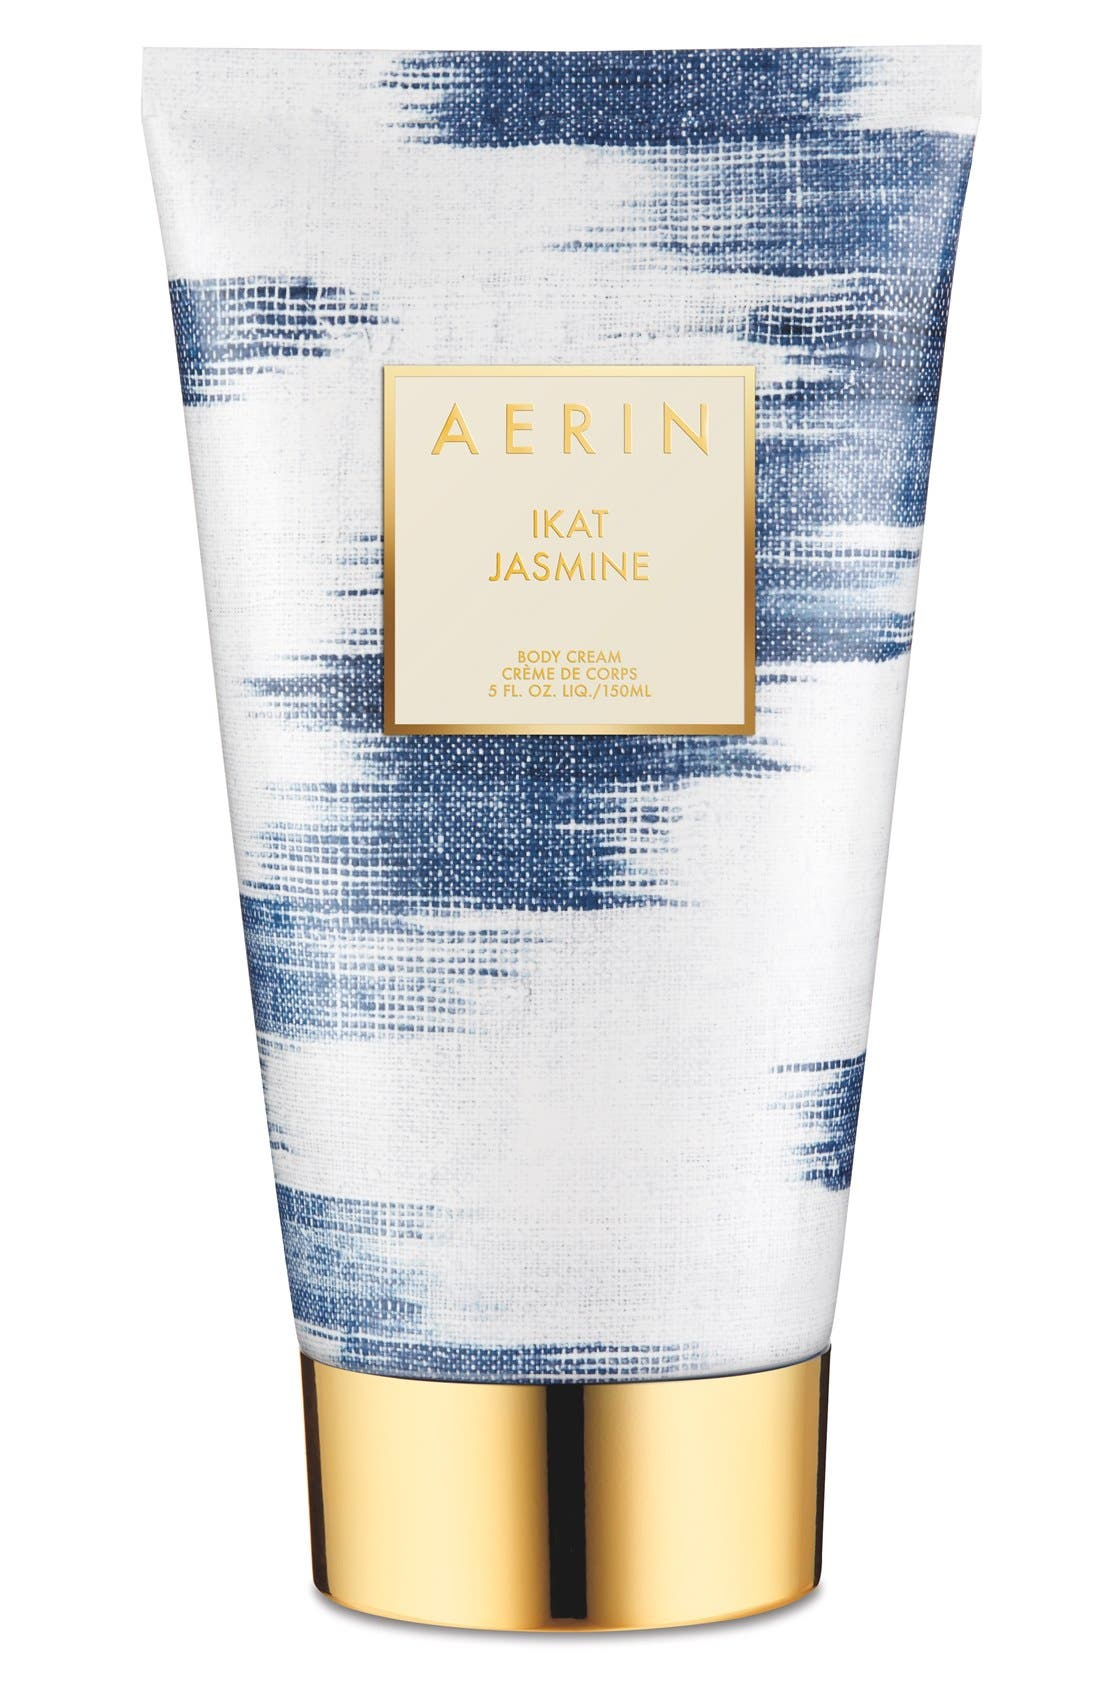 ESTÉE LAUDER, AERIN Beauty Ikat Jasmine Body Cream, Main thumbnail 1, color, NO COLOR